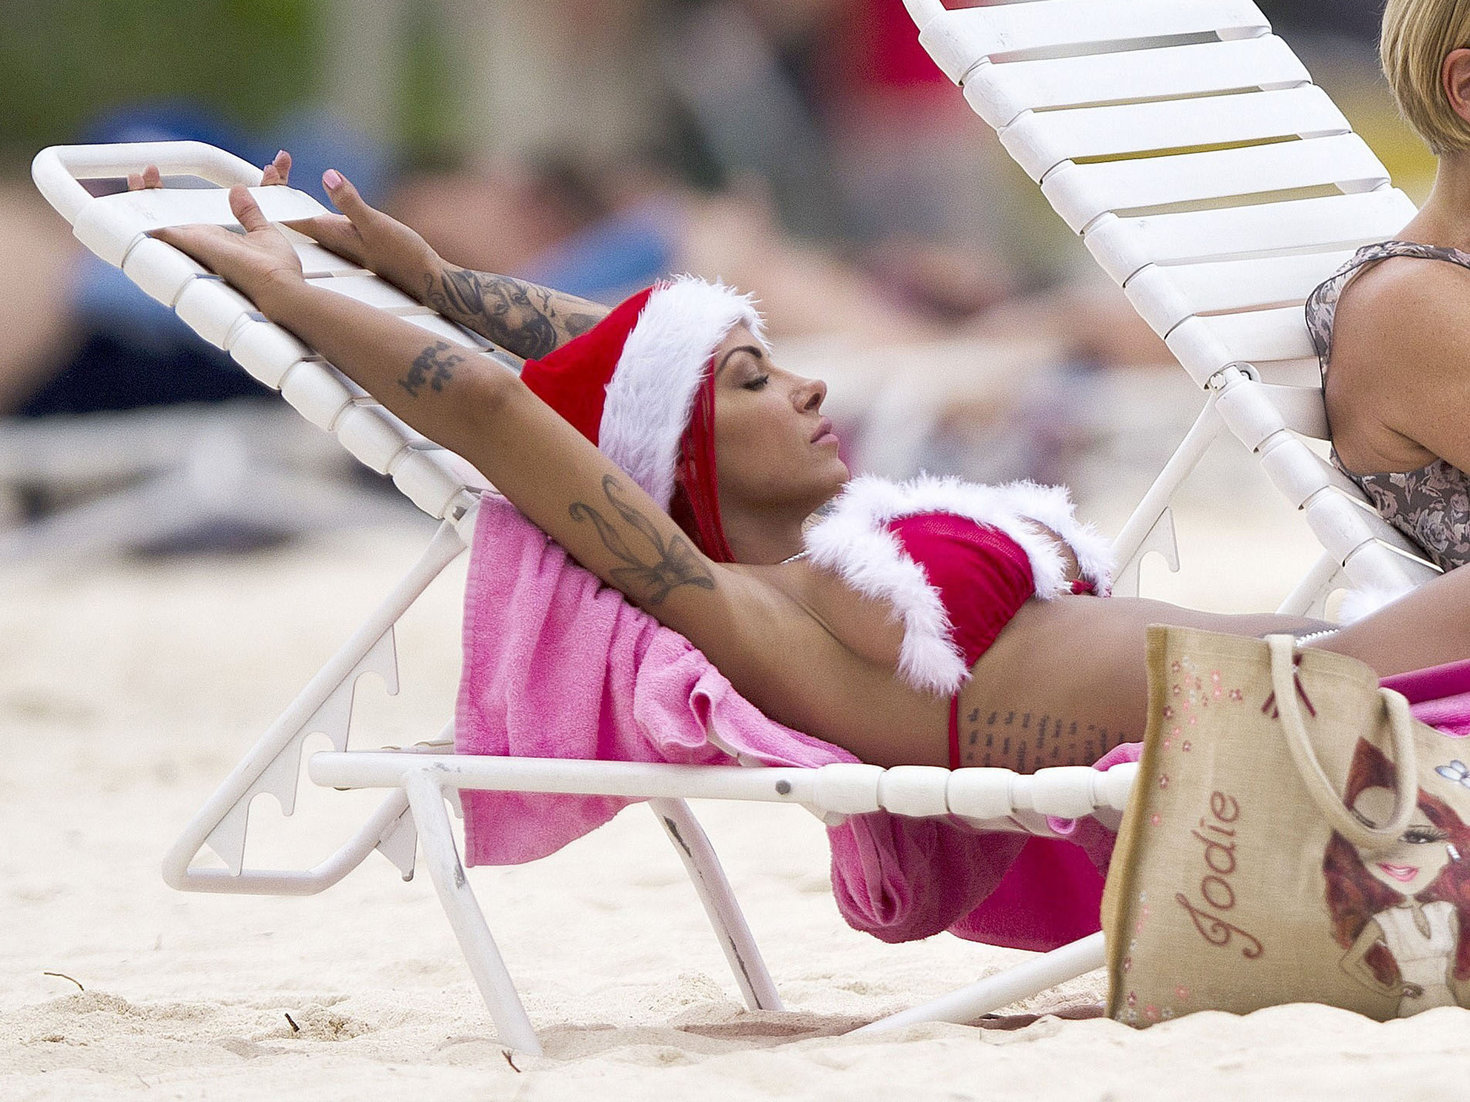 Jodie Marsh in a Santa Bikini on the beach in Barbardos on December 24, 2012